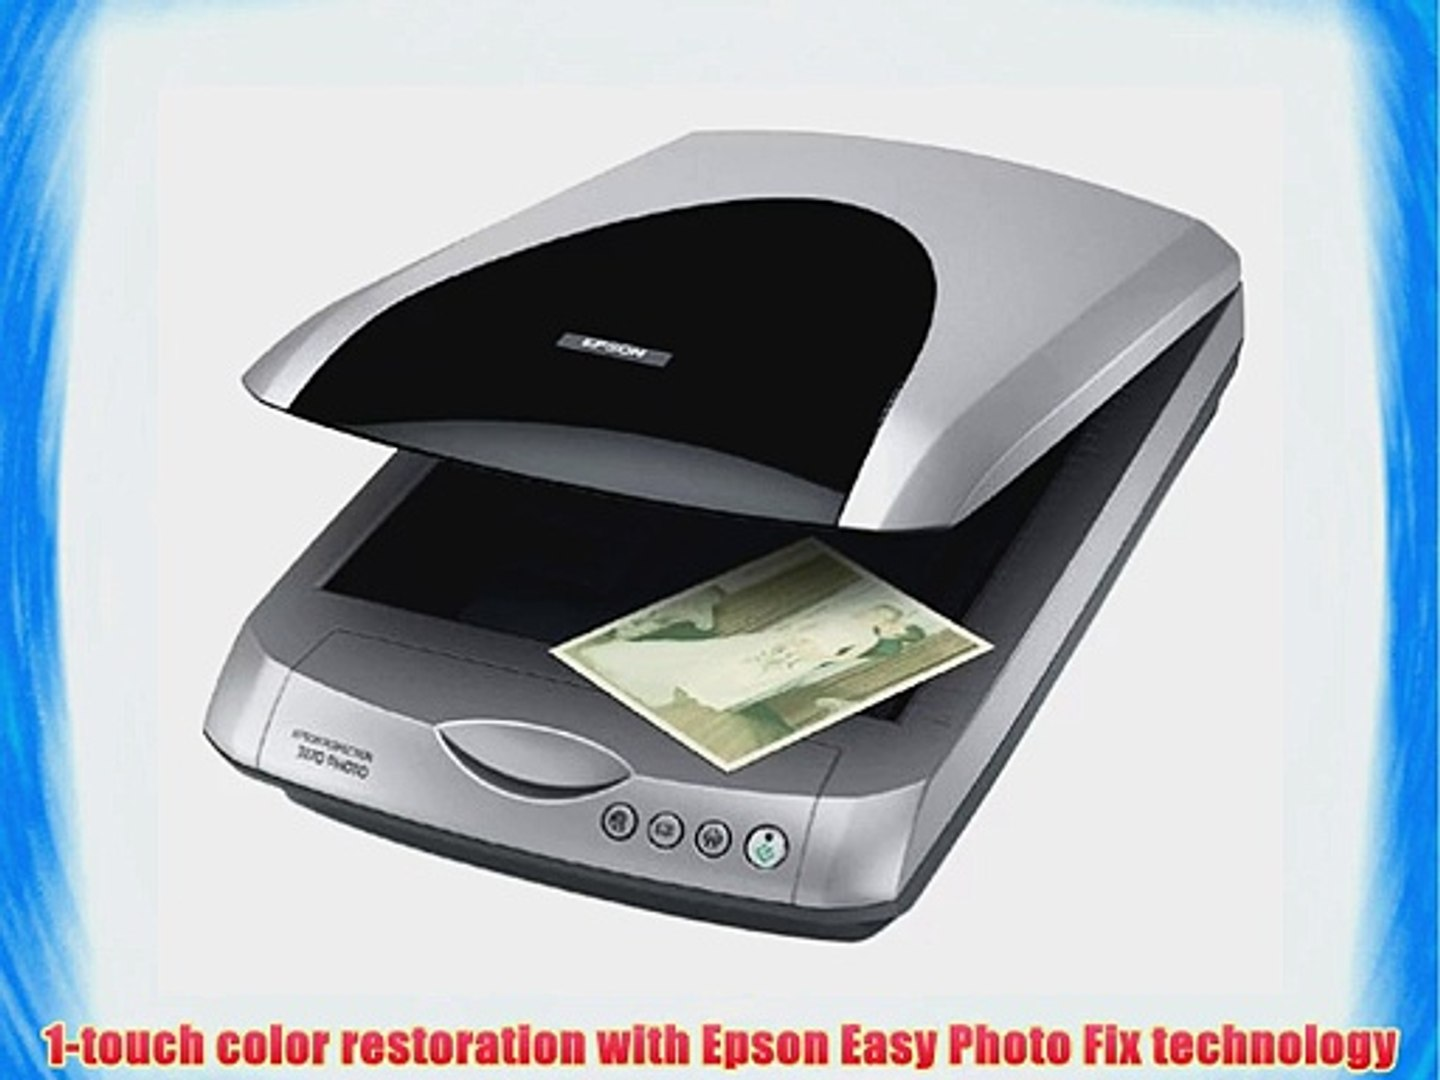 Epson Perfection 3170 Photo Scanner